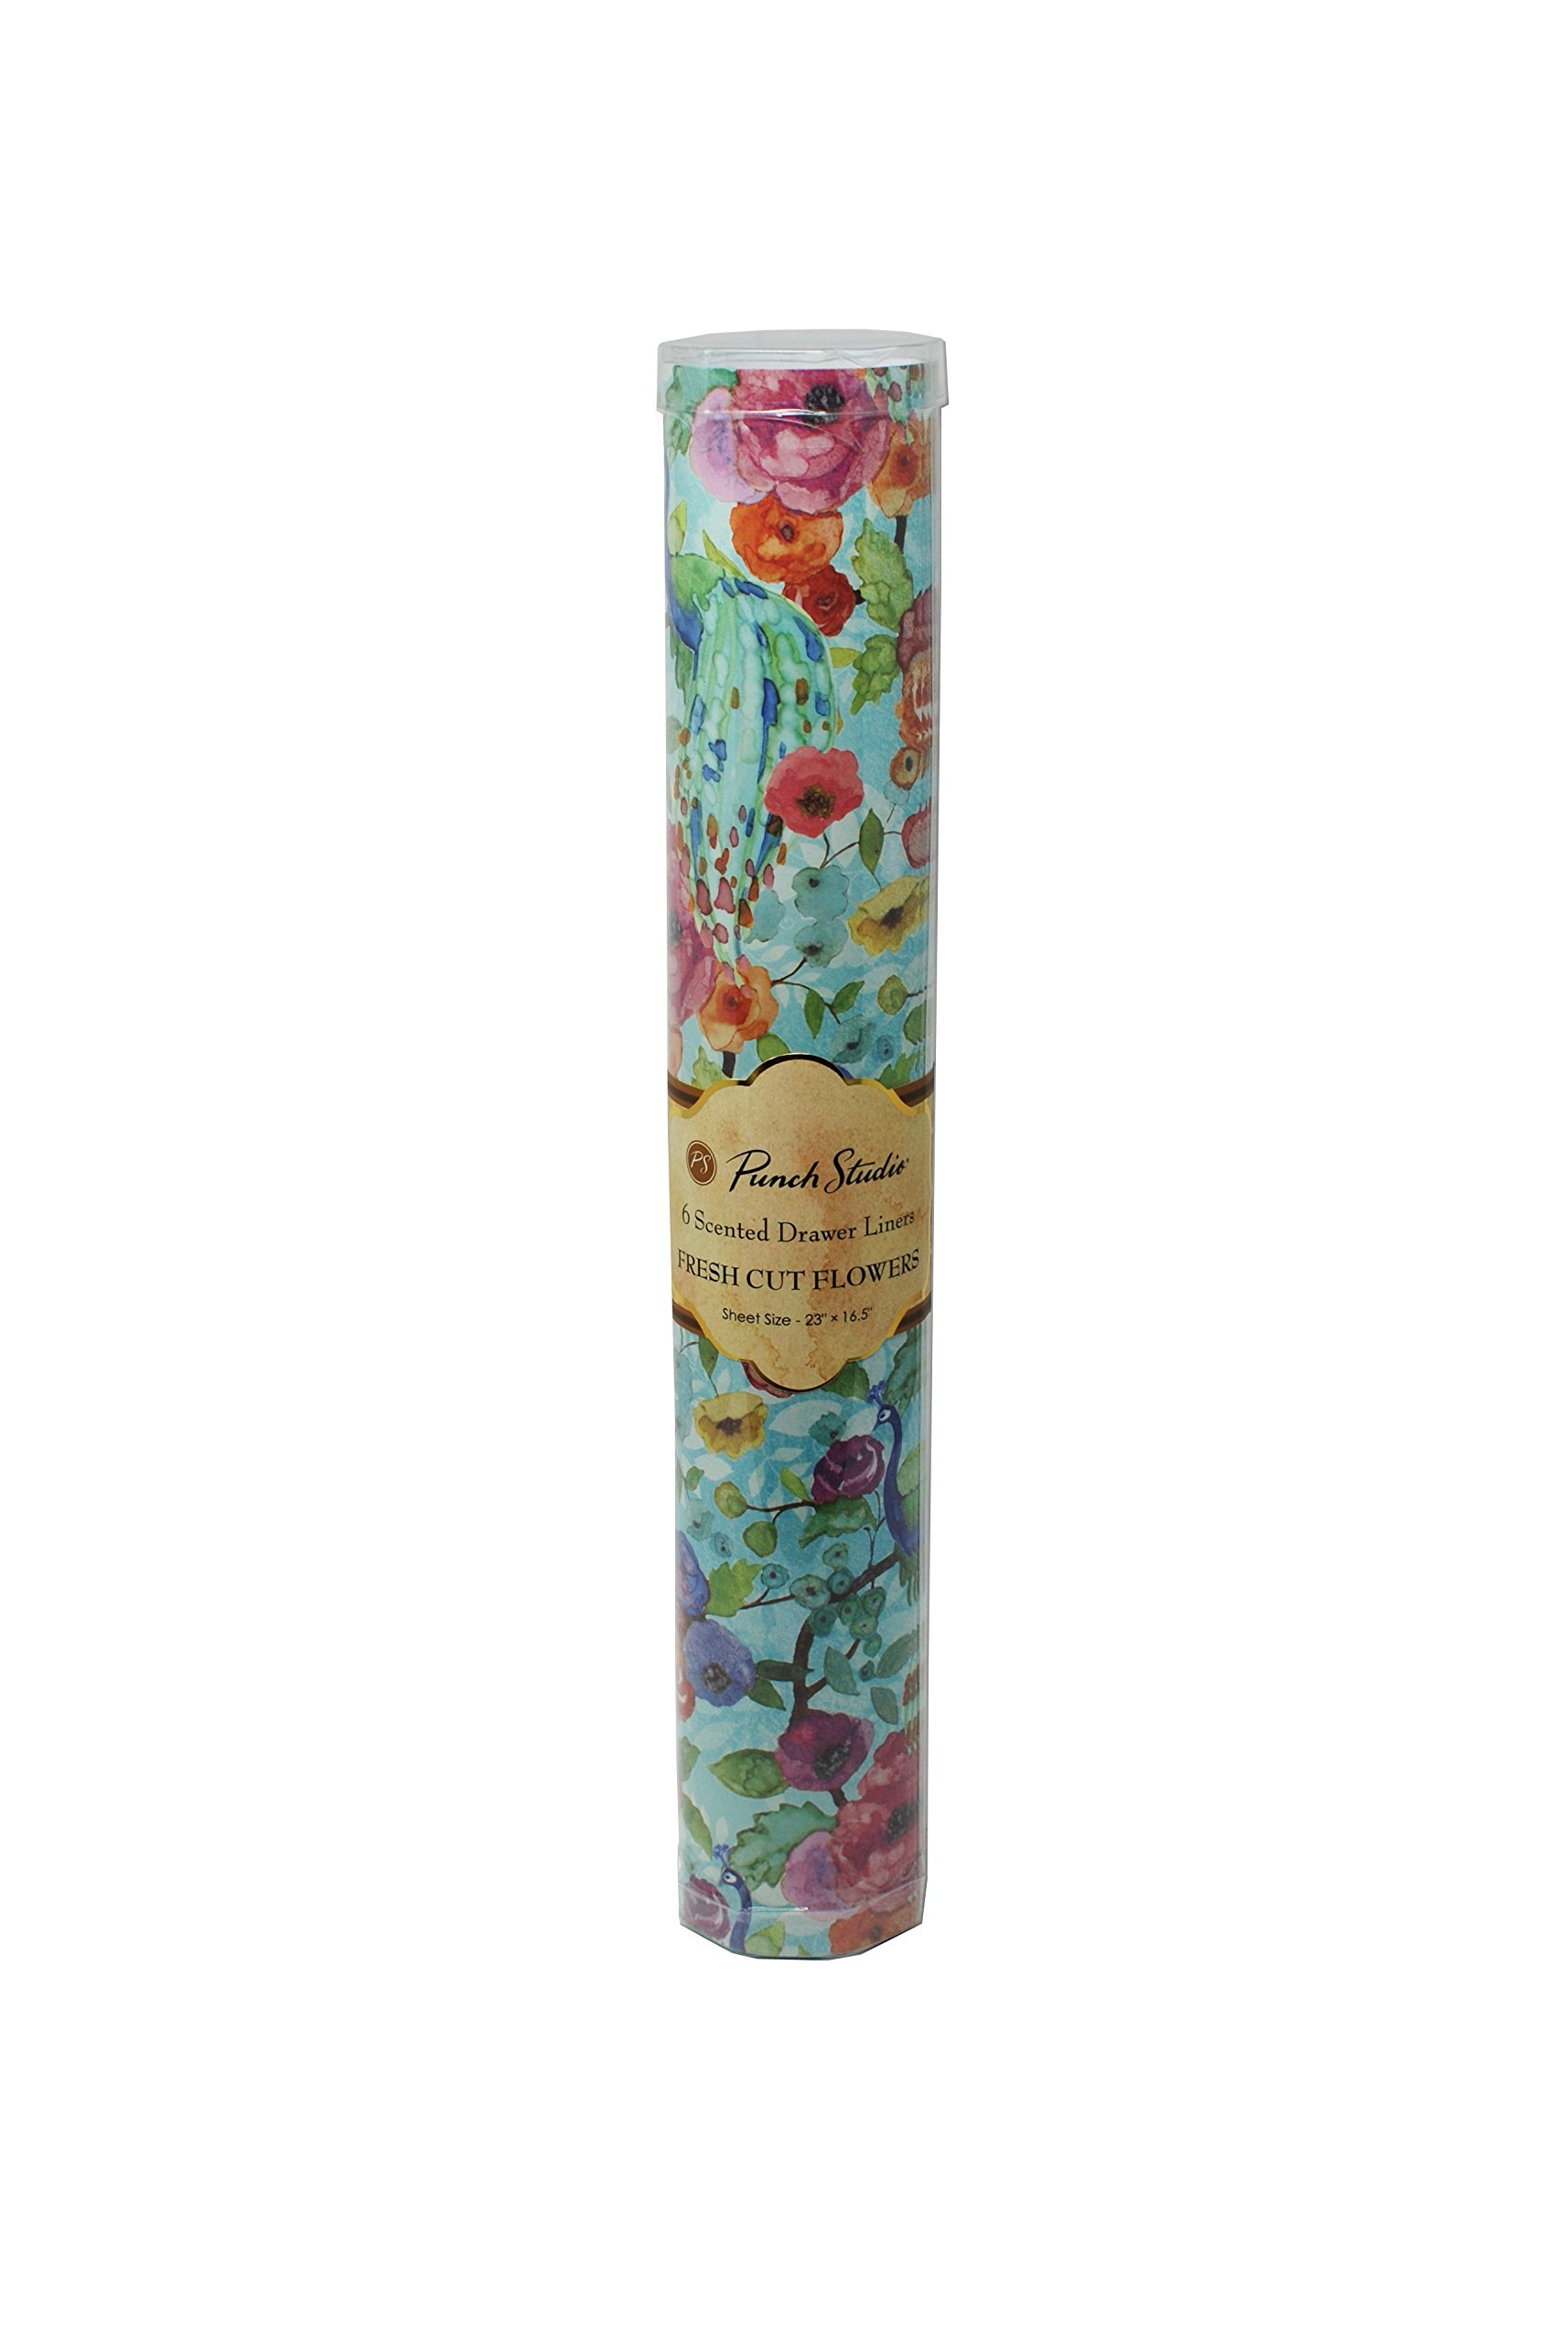 Punch Studio Floral Peacock Scented Drawer Liners